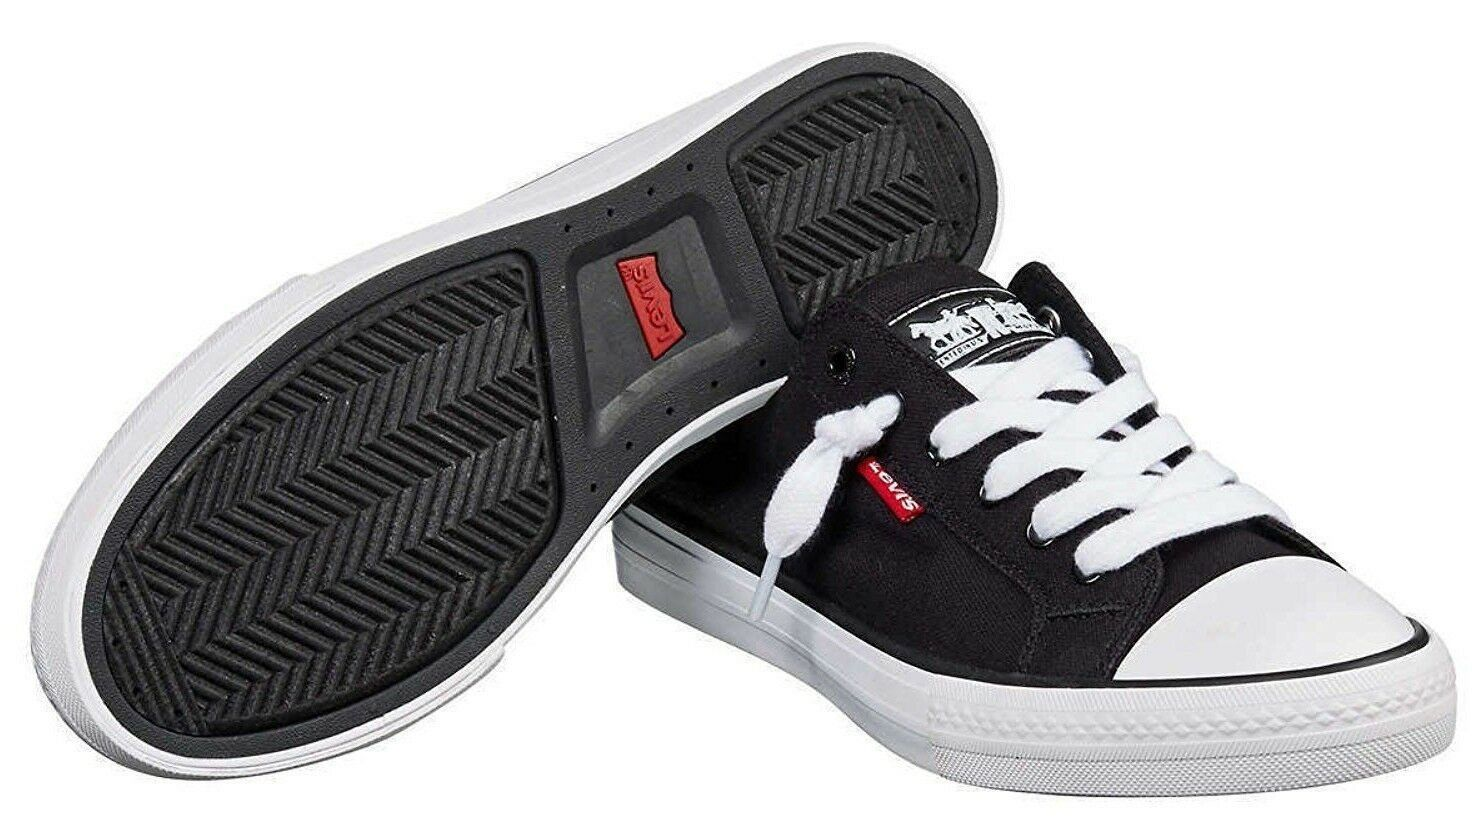 NEW Levi's Black Denim Girls Stan G Canvas Sneakers Gym Shoes New in Box 1091100